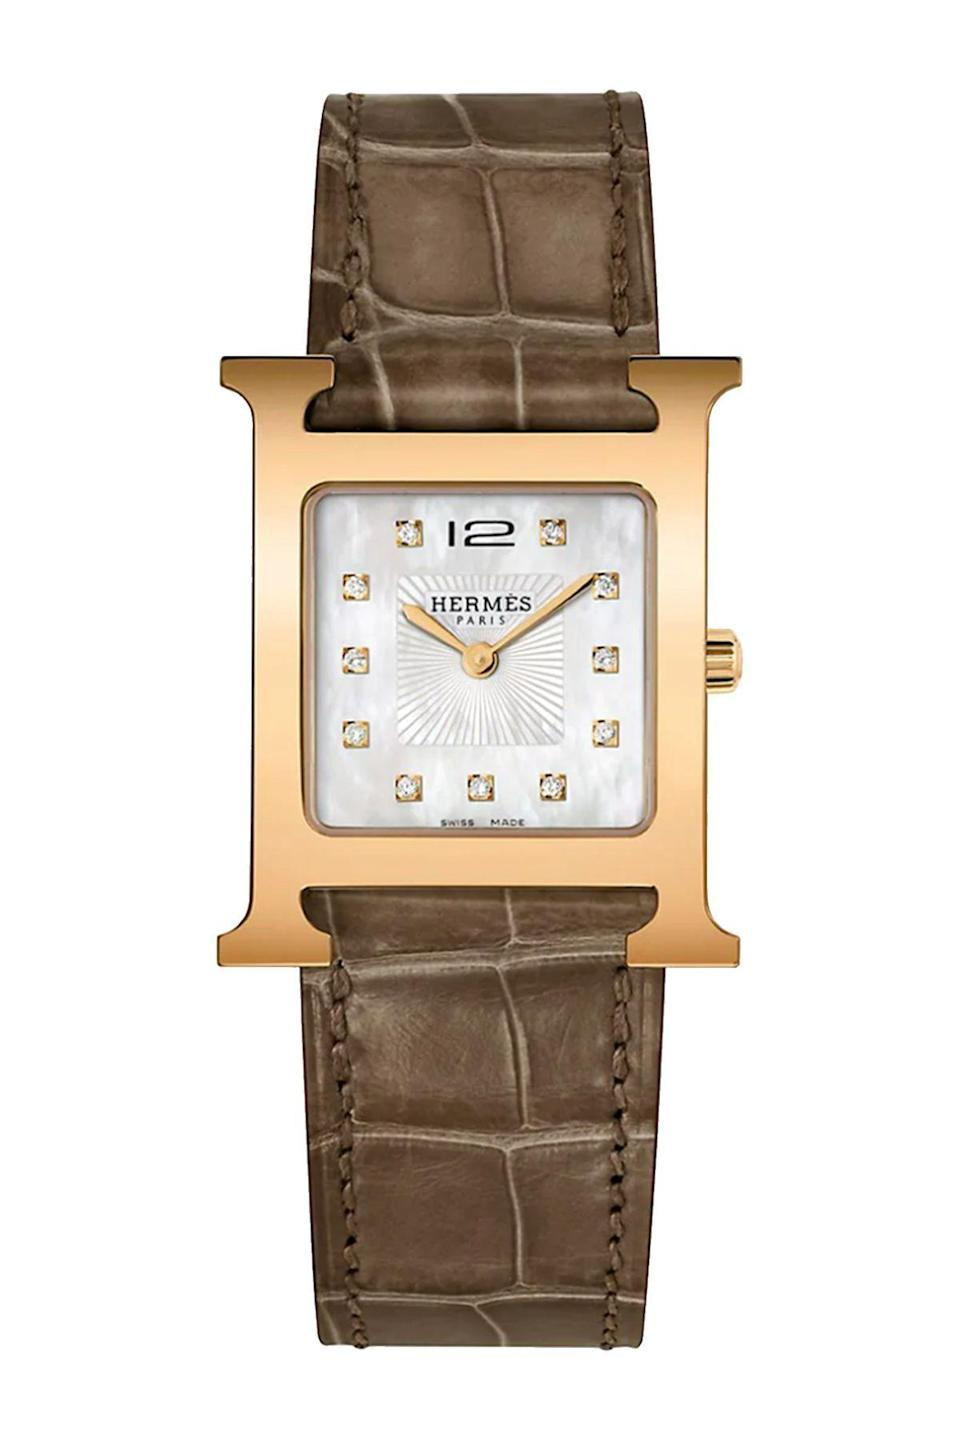 """<p><strong>Hermès</strong></p><p>saksfifthavenue.com</p><p><strong>$4525.00</strong></p><p><a href=""""https://go.redirectingat.com?id=74968X1596630&url=https%3A%2F%2Fwww.saksfifthavenue.com%2Fproduct%2Fherm%25C3%25A8s-heure-h-diamond--rose-goldplated-steel--amp--alligator-strap-watch-0400013621374.html%3Fdwvar_0400013621374_color%3DROSE%2BGOLD&sref=https%3A%2F%2Fwww.townandcountrymag.com%2Fstyle%2Fjewelry-and-watches%2Fg36186288%2Fbest-rose-gold-watches-women%2F"""" rel=""""nofollow noopener"""" target=""""_blank"""" data-ylk=""""slk:Shop Now"""" class=""""link rapid-noclick-resp"""">Shop Now</a></p><p>No watch collection is complete without an Hermes H Heure.</p>"""